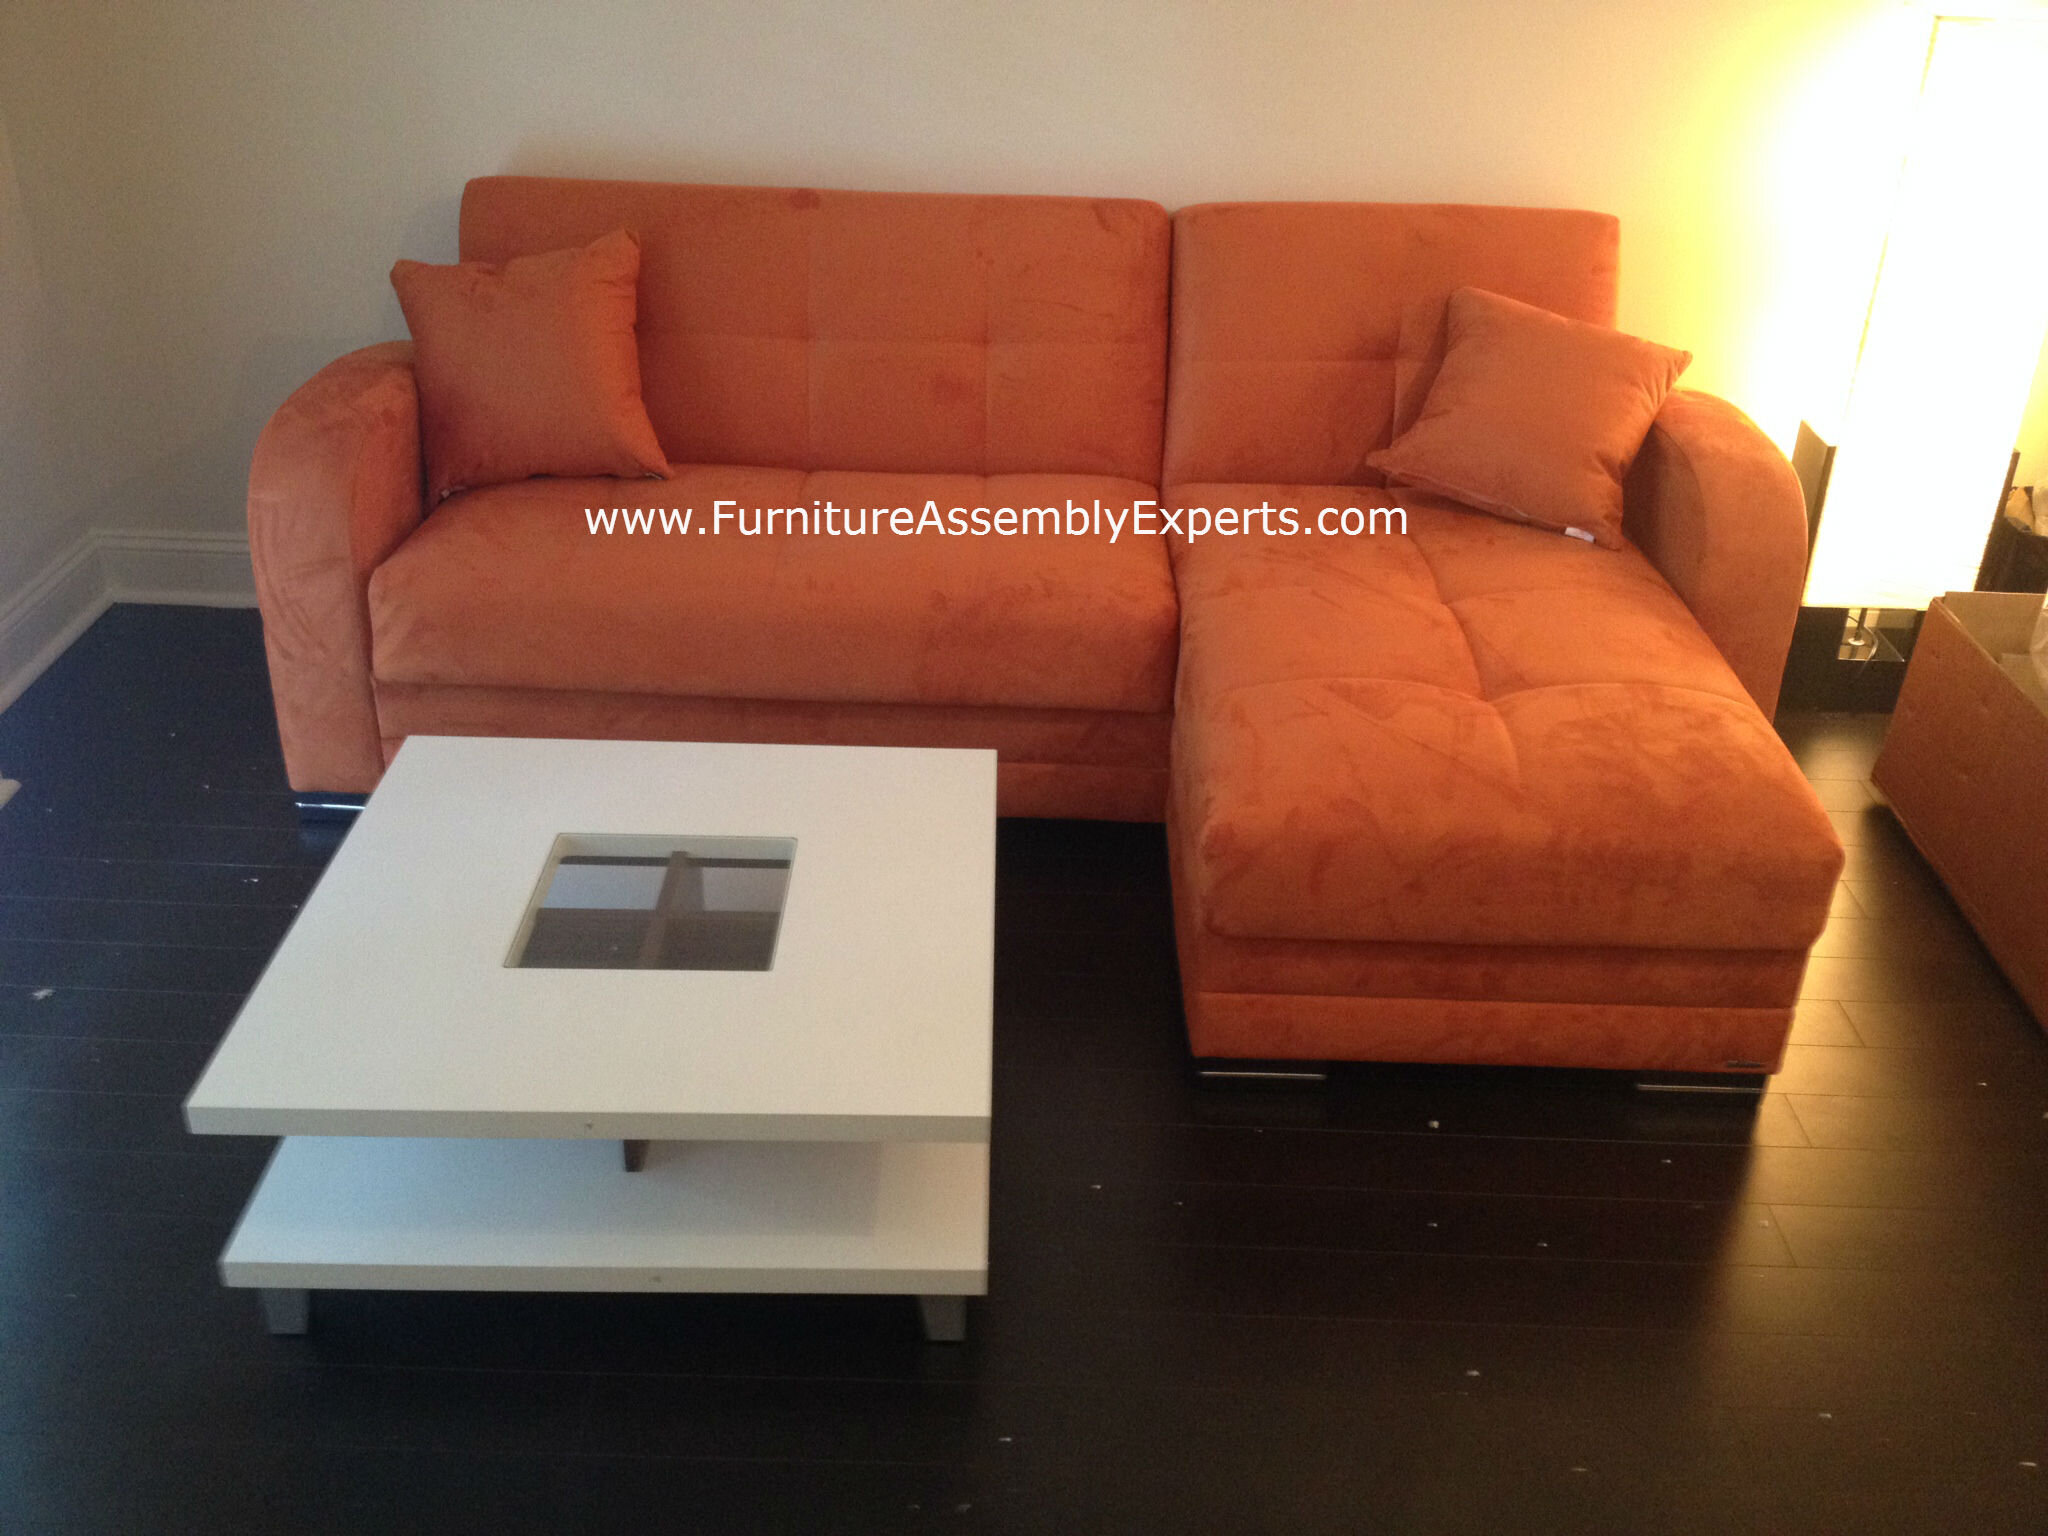 check out this restoration hardware sofa and coffee table installed for a customer at his home in Washington DC by our Furniture assembly Experts